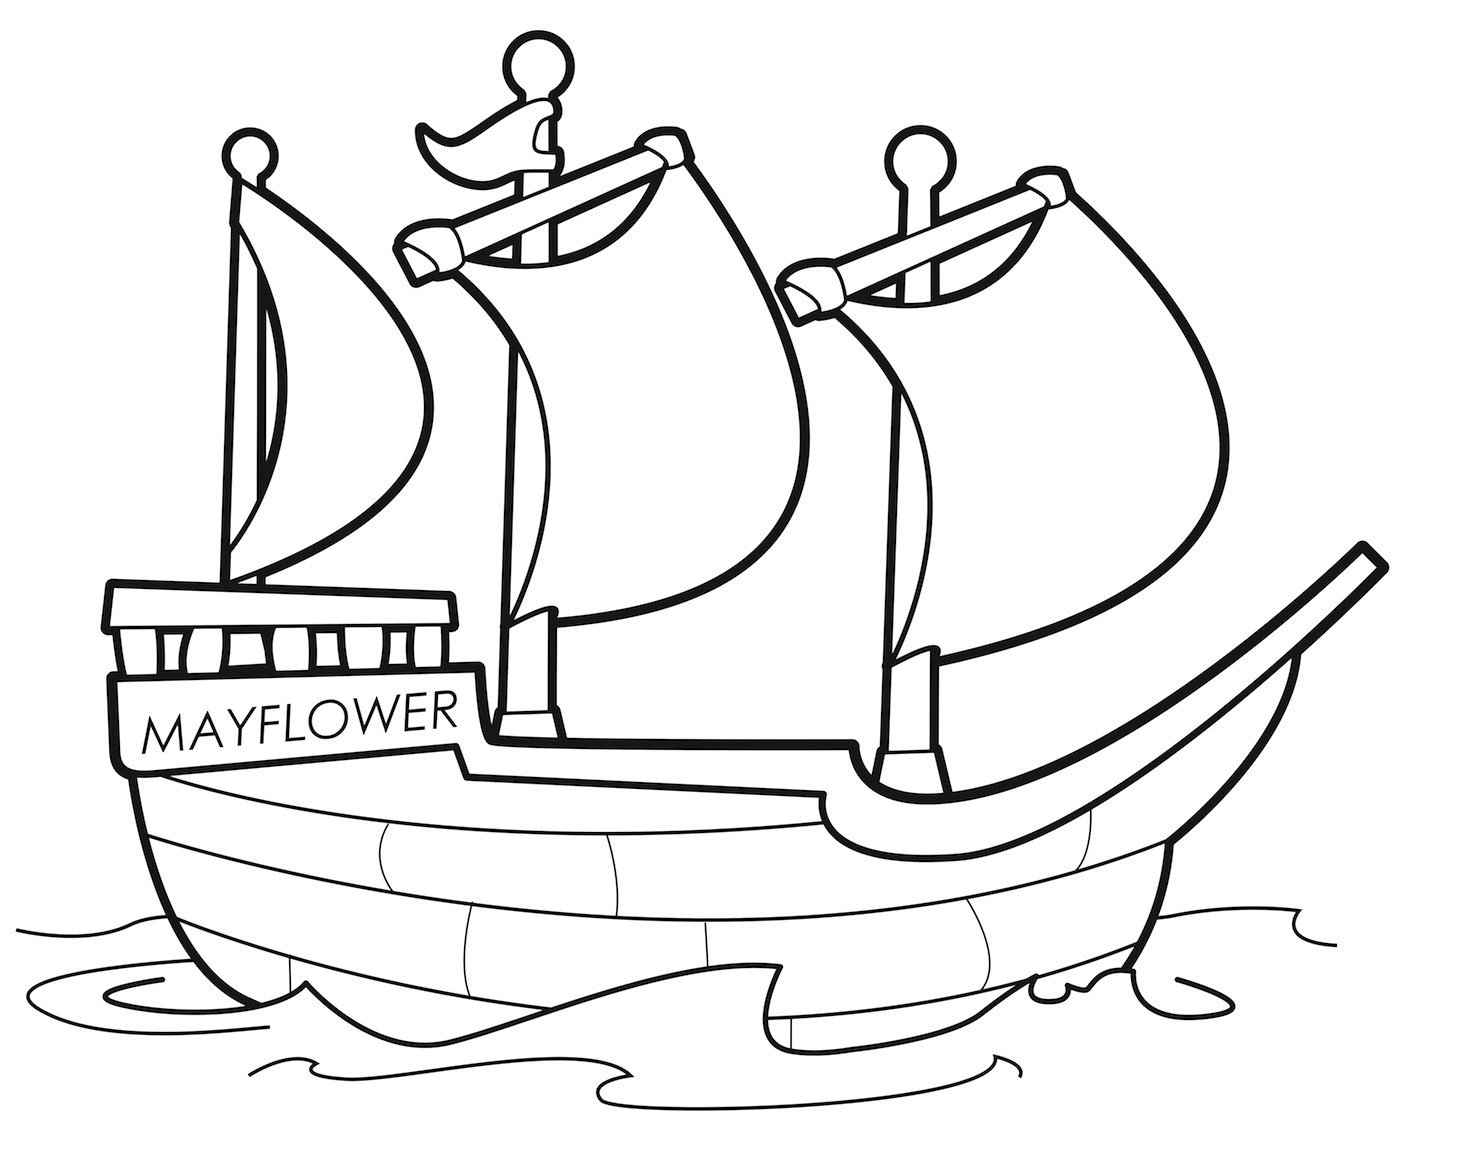 It's just a photo of Effortless mayflower coloring page